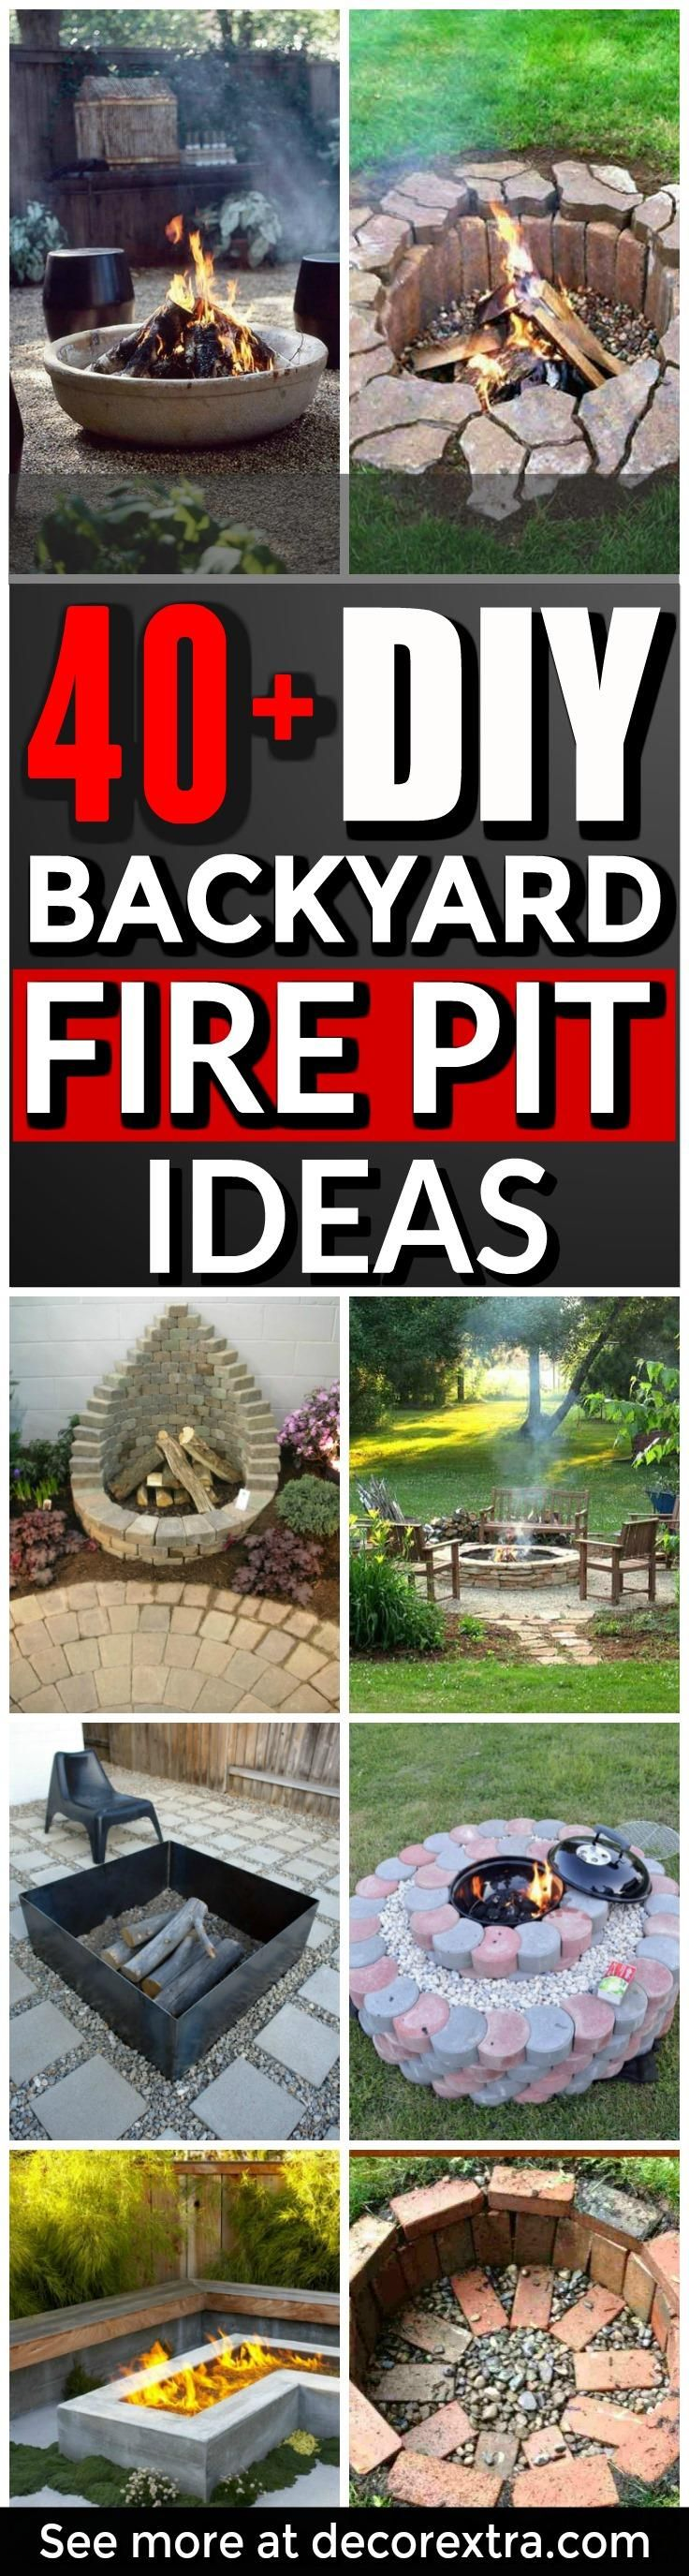 The 25 best outdoor fire ideas on pinterest diy for Step by step fire pit